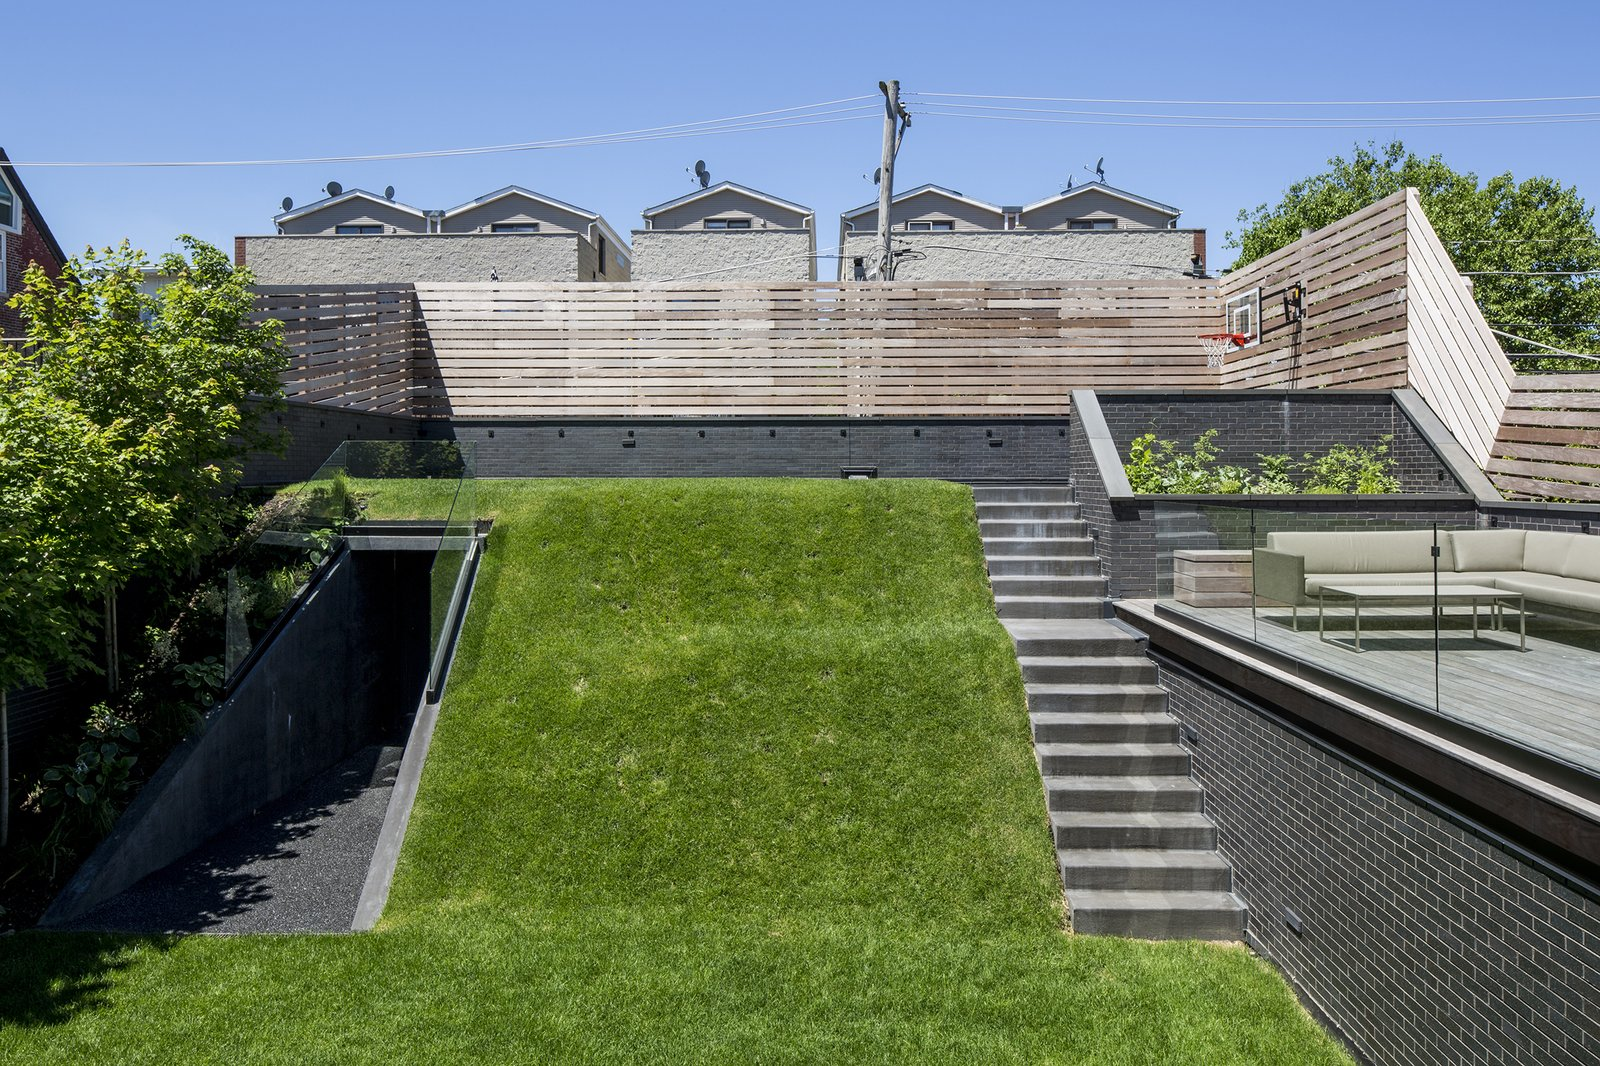 """Play surface and """"hill"""" covers garage Tagged: Outdoor, Grass, Trees, Back Yard, Horizontal Fences, Wall, Wood Patio, Porch, Deck, Wood Fences, Wall, and Slope.  Mohawk House by UrbanLab"""